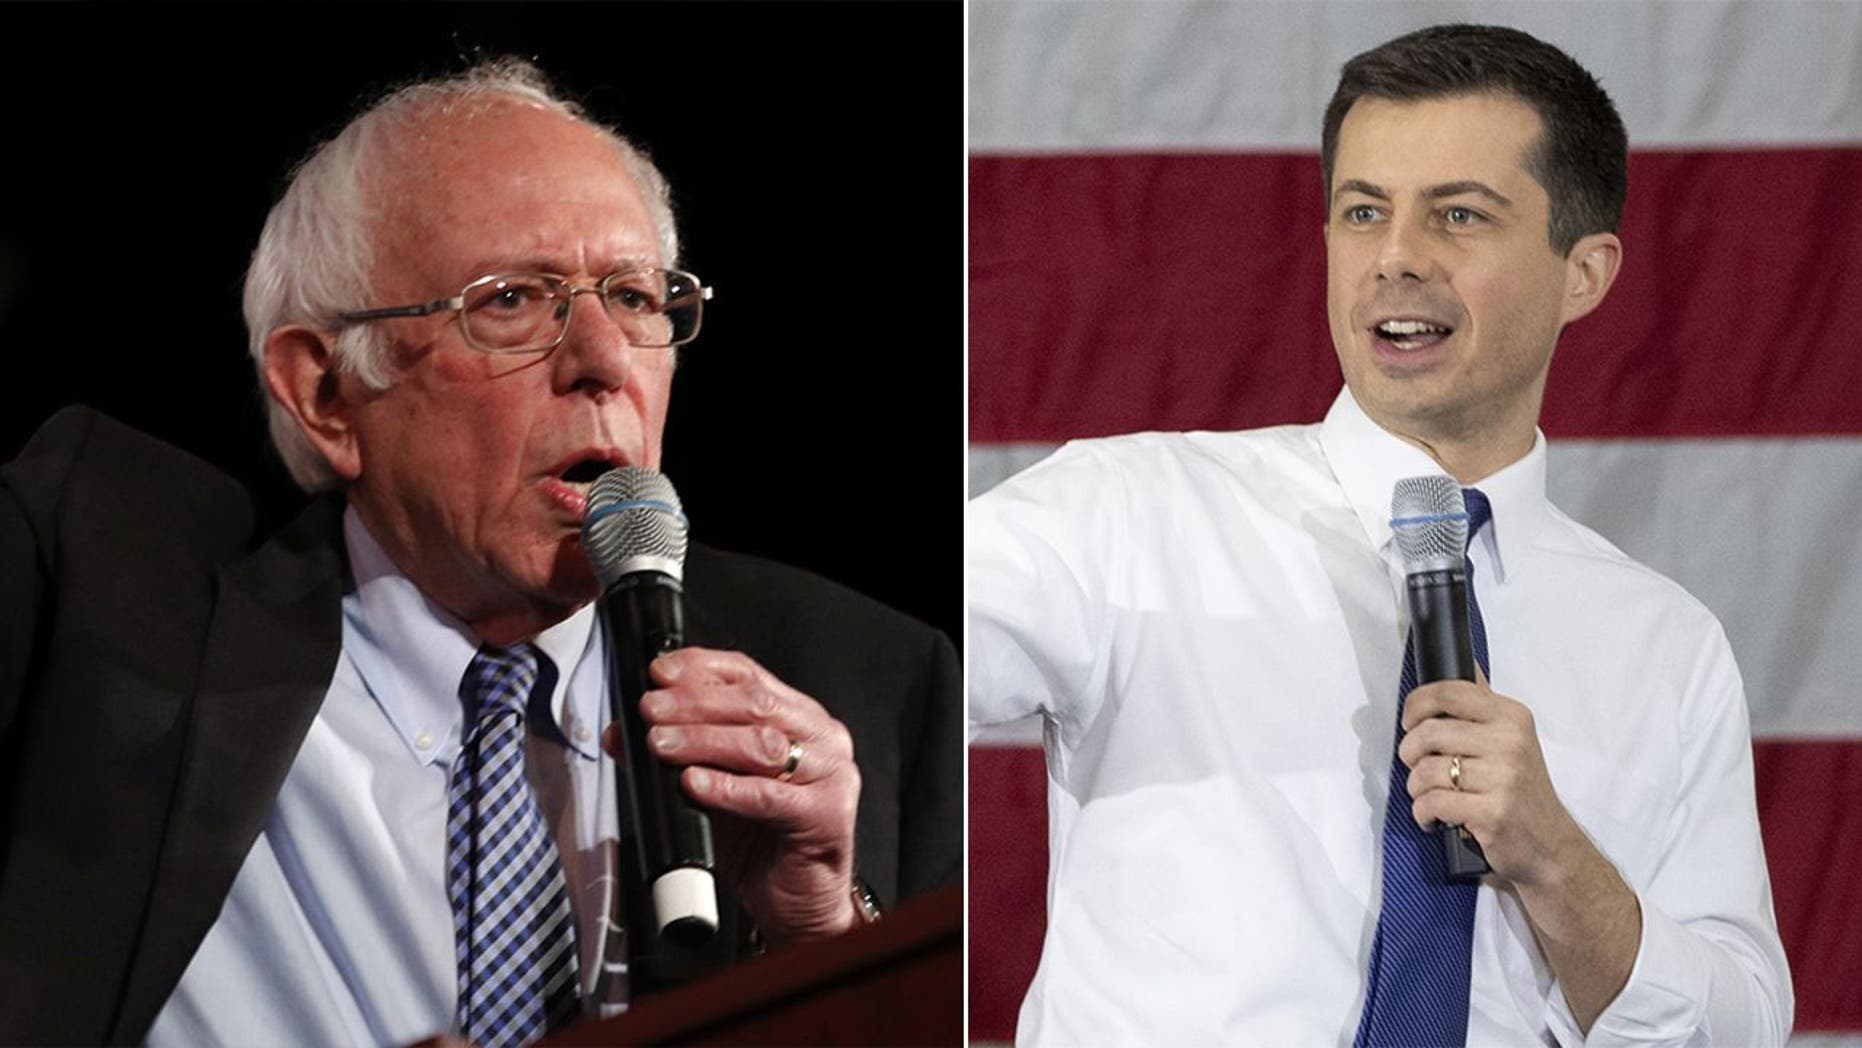 New Hampshire primary voting begins as Sanders and Buttigieg battle for top spot, Biden feels the heat 1